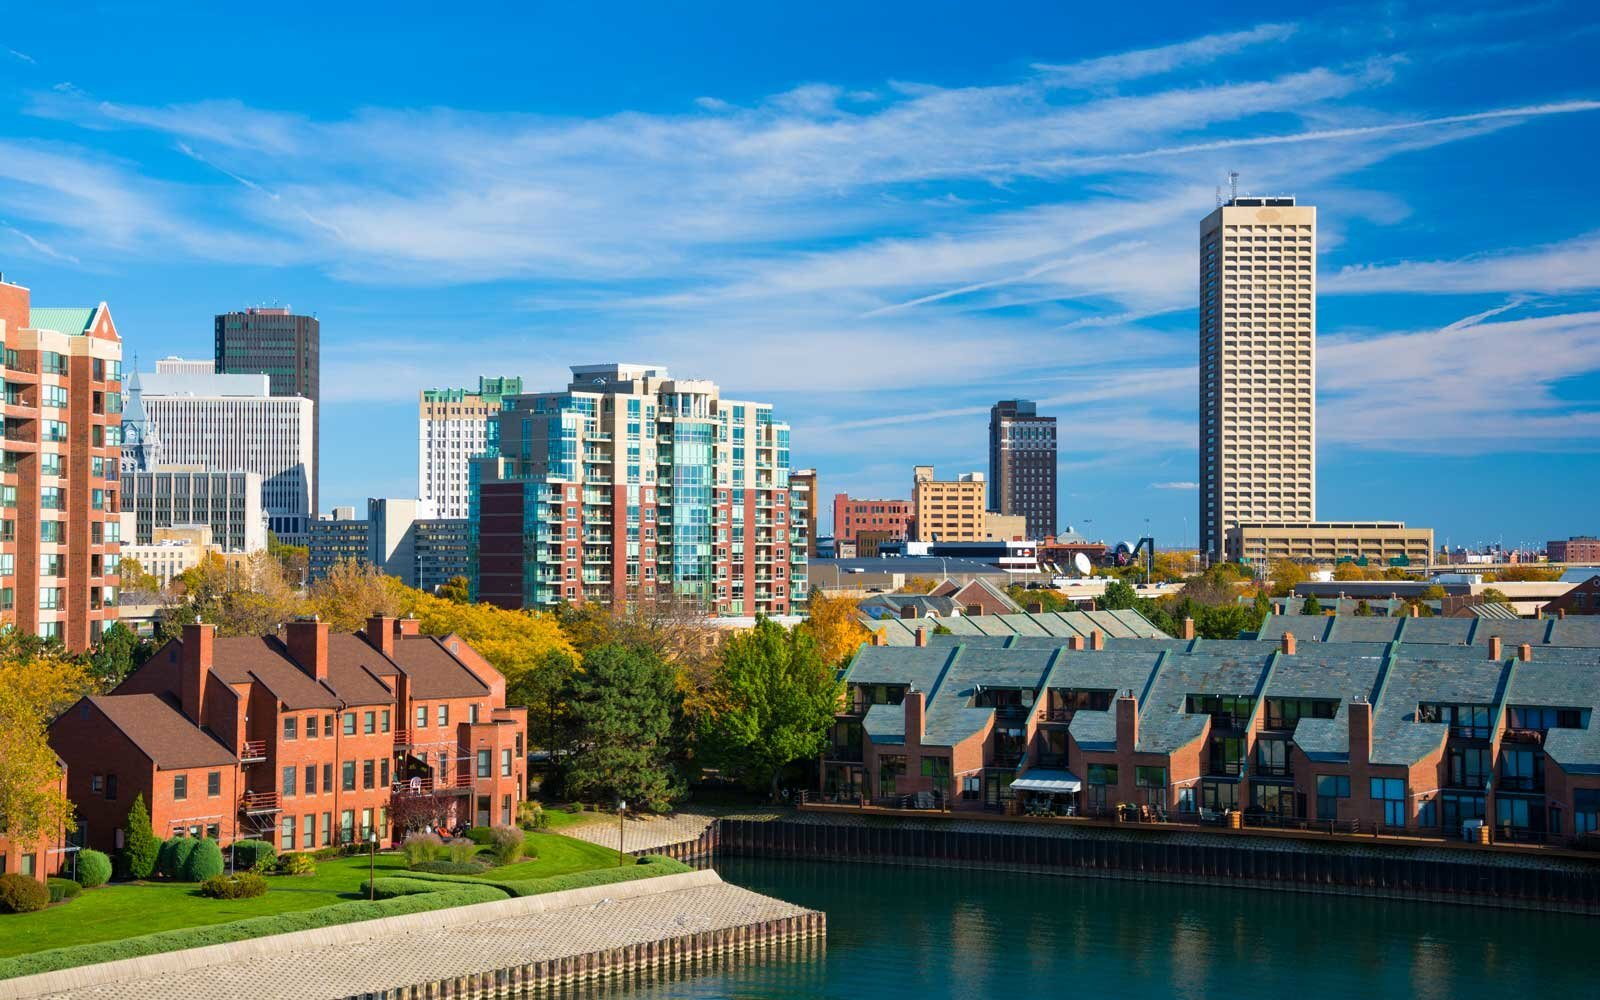 America's Favorite Cities for Architecture 2016 | Travel + Leisure